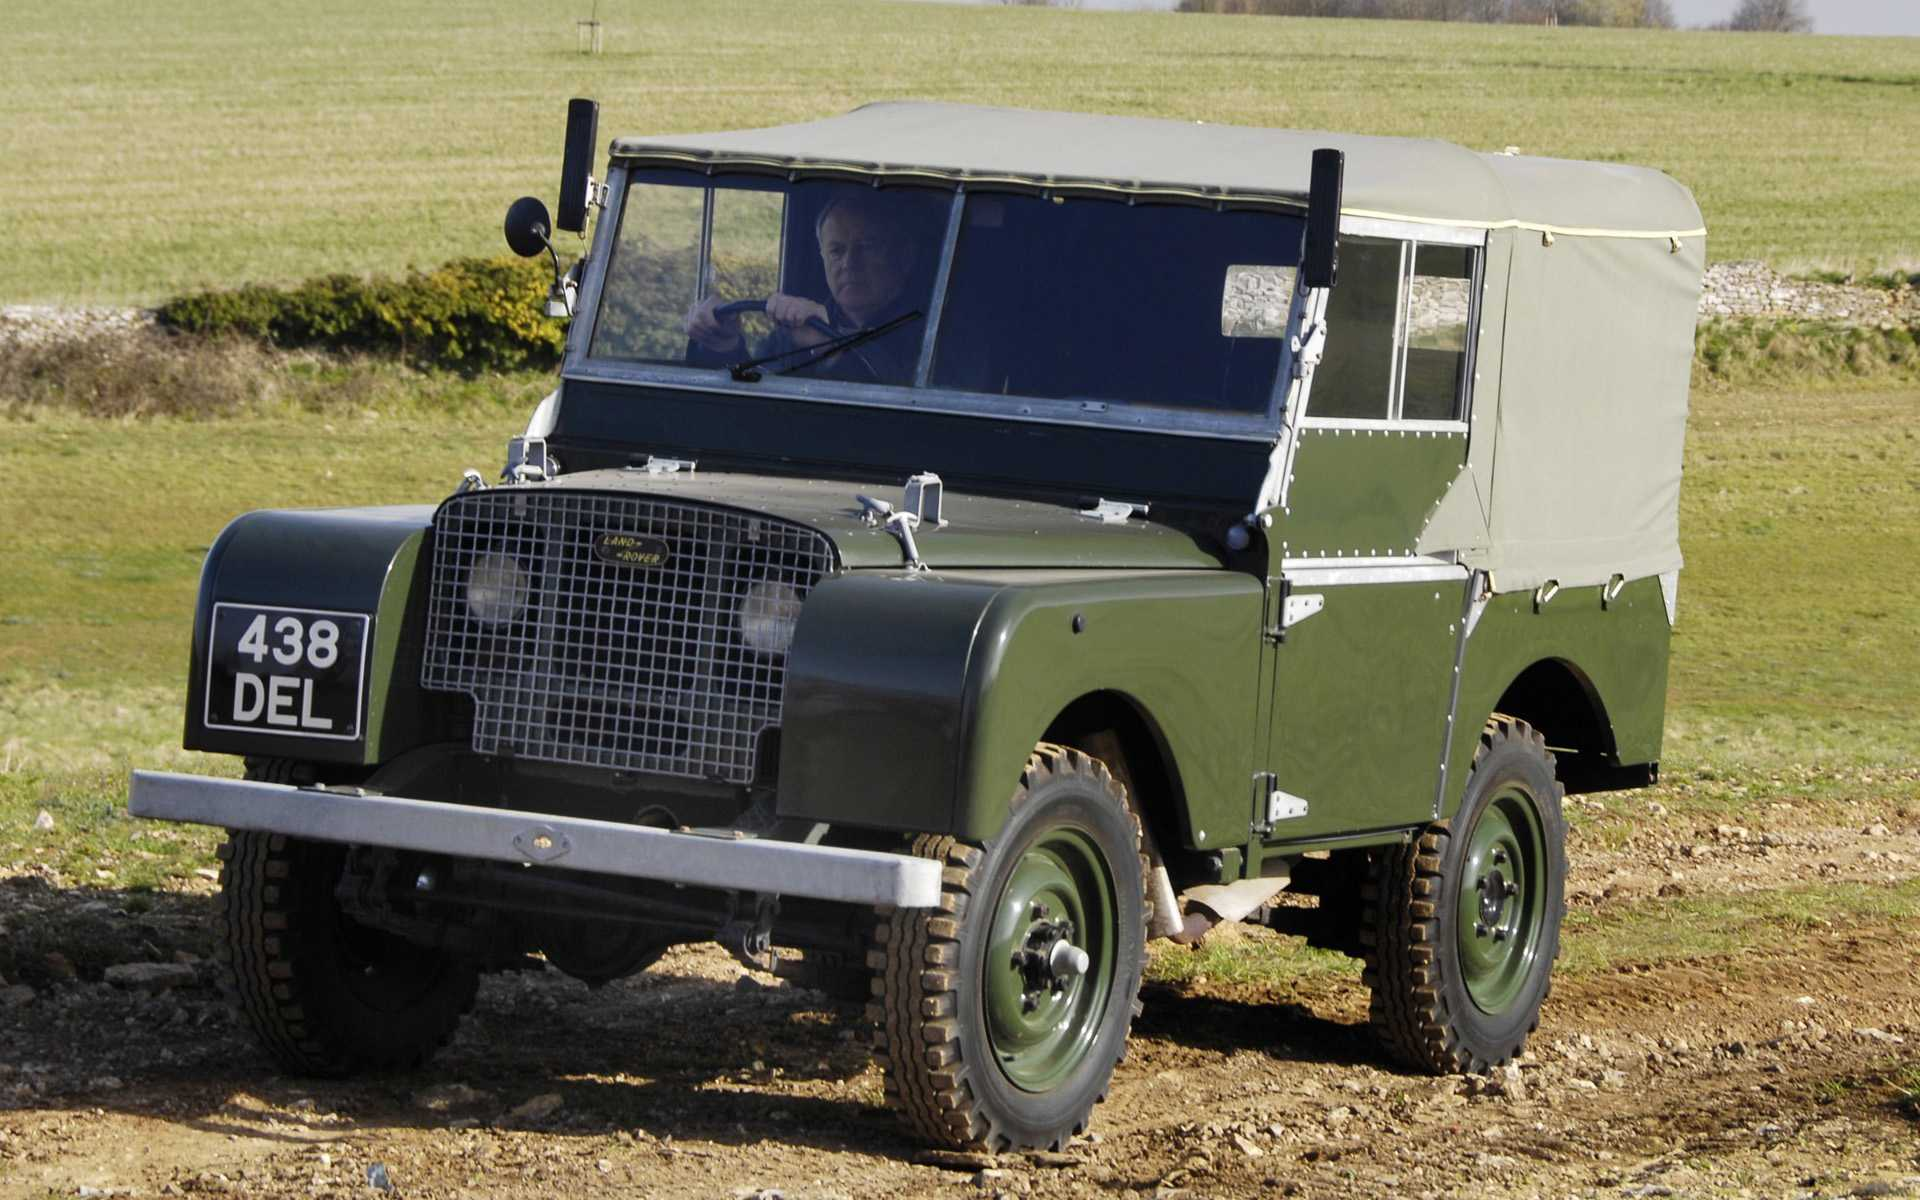 60 Years and Counting, the Land Rover Defender Continues to Shine